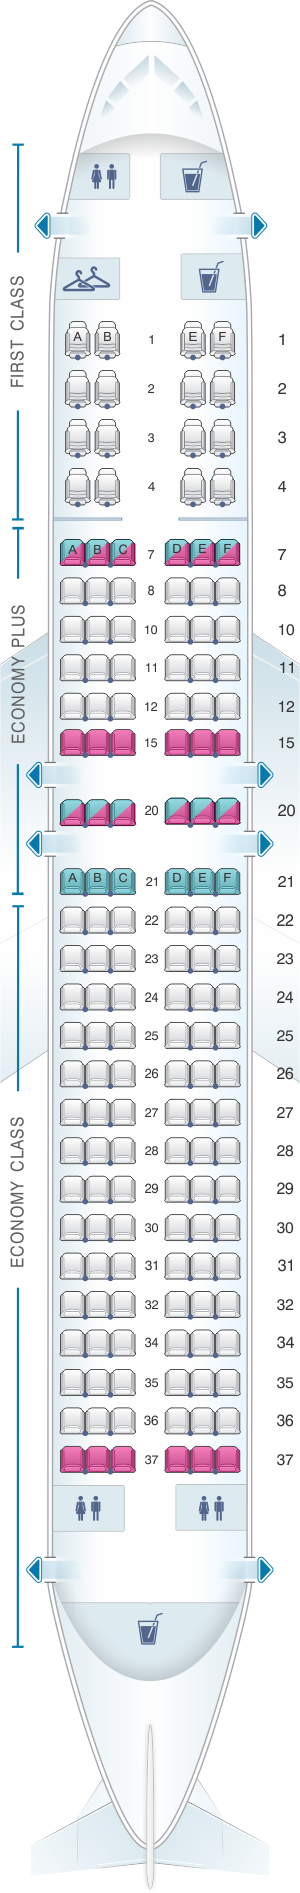 Seat map for United Airlines Boeing B737 800 - version 1